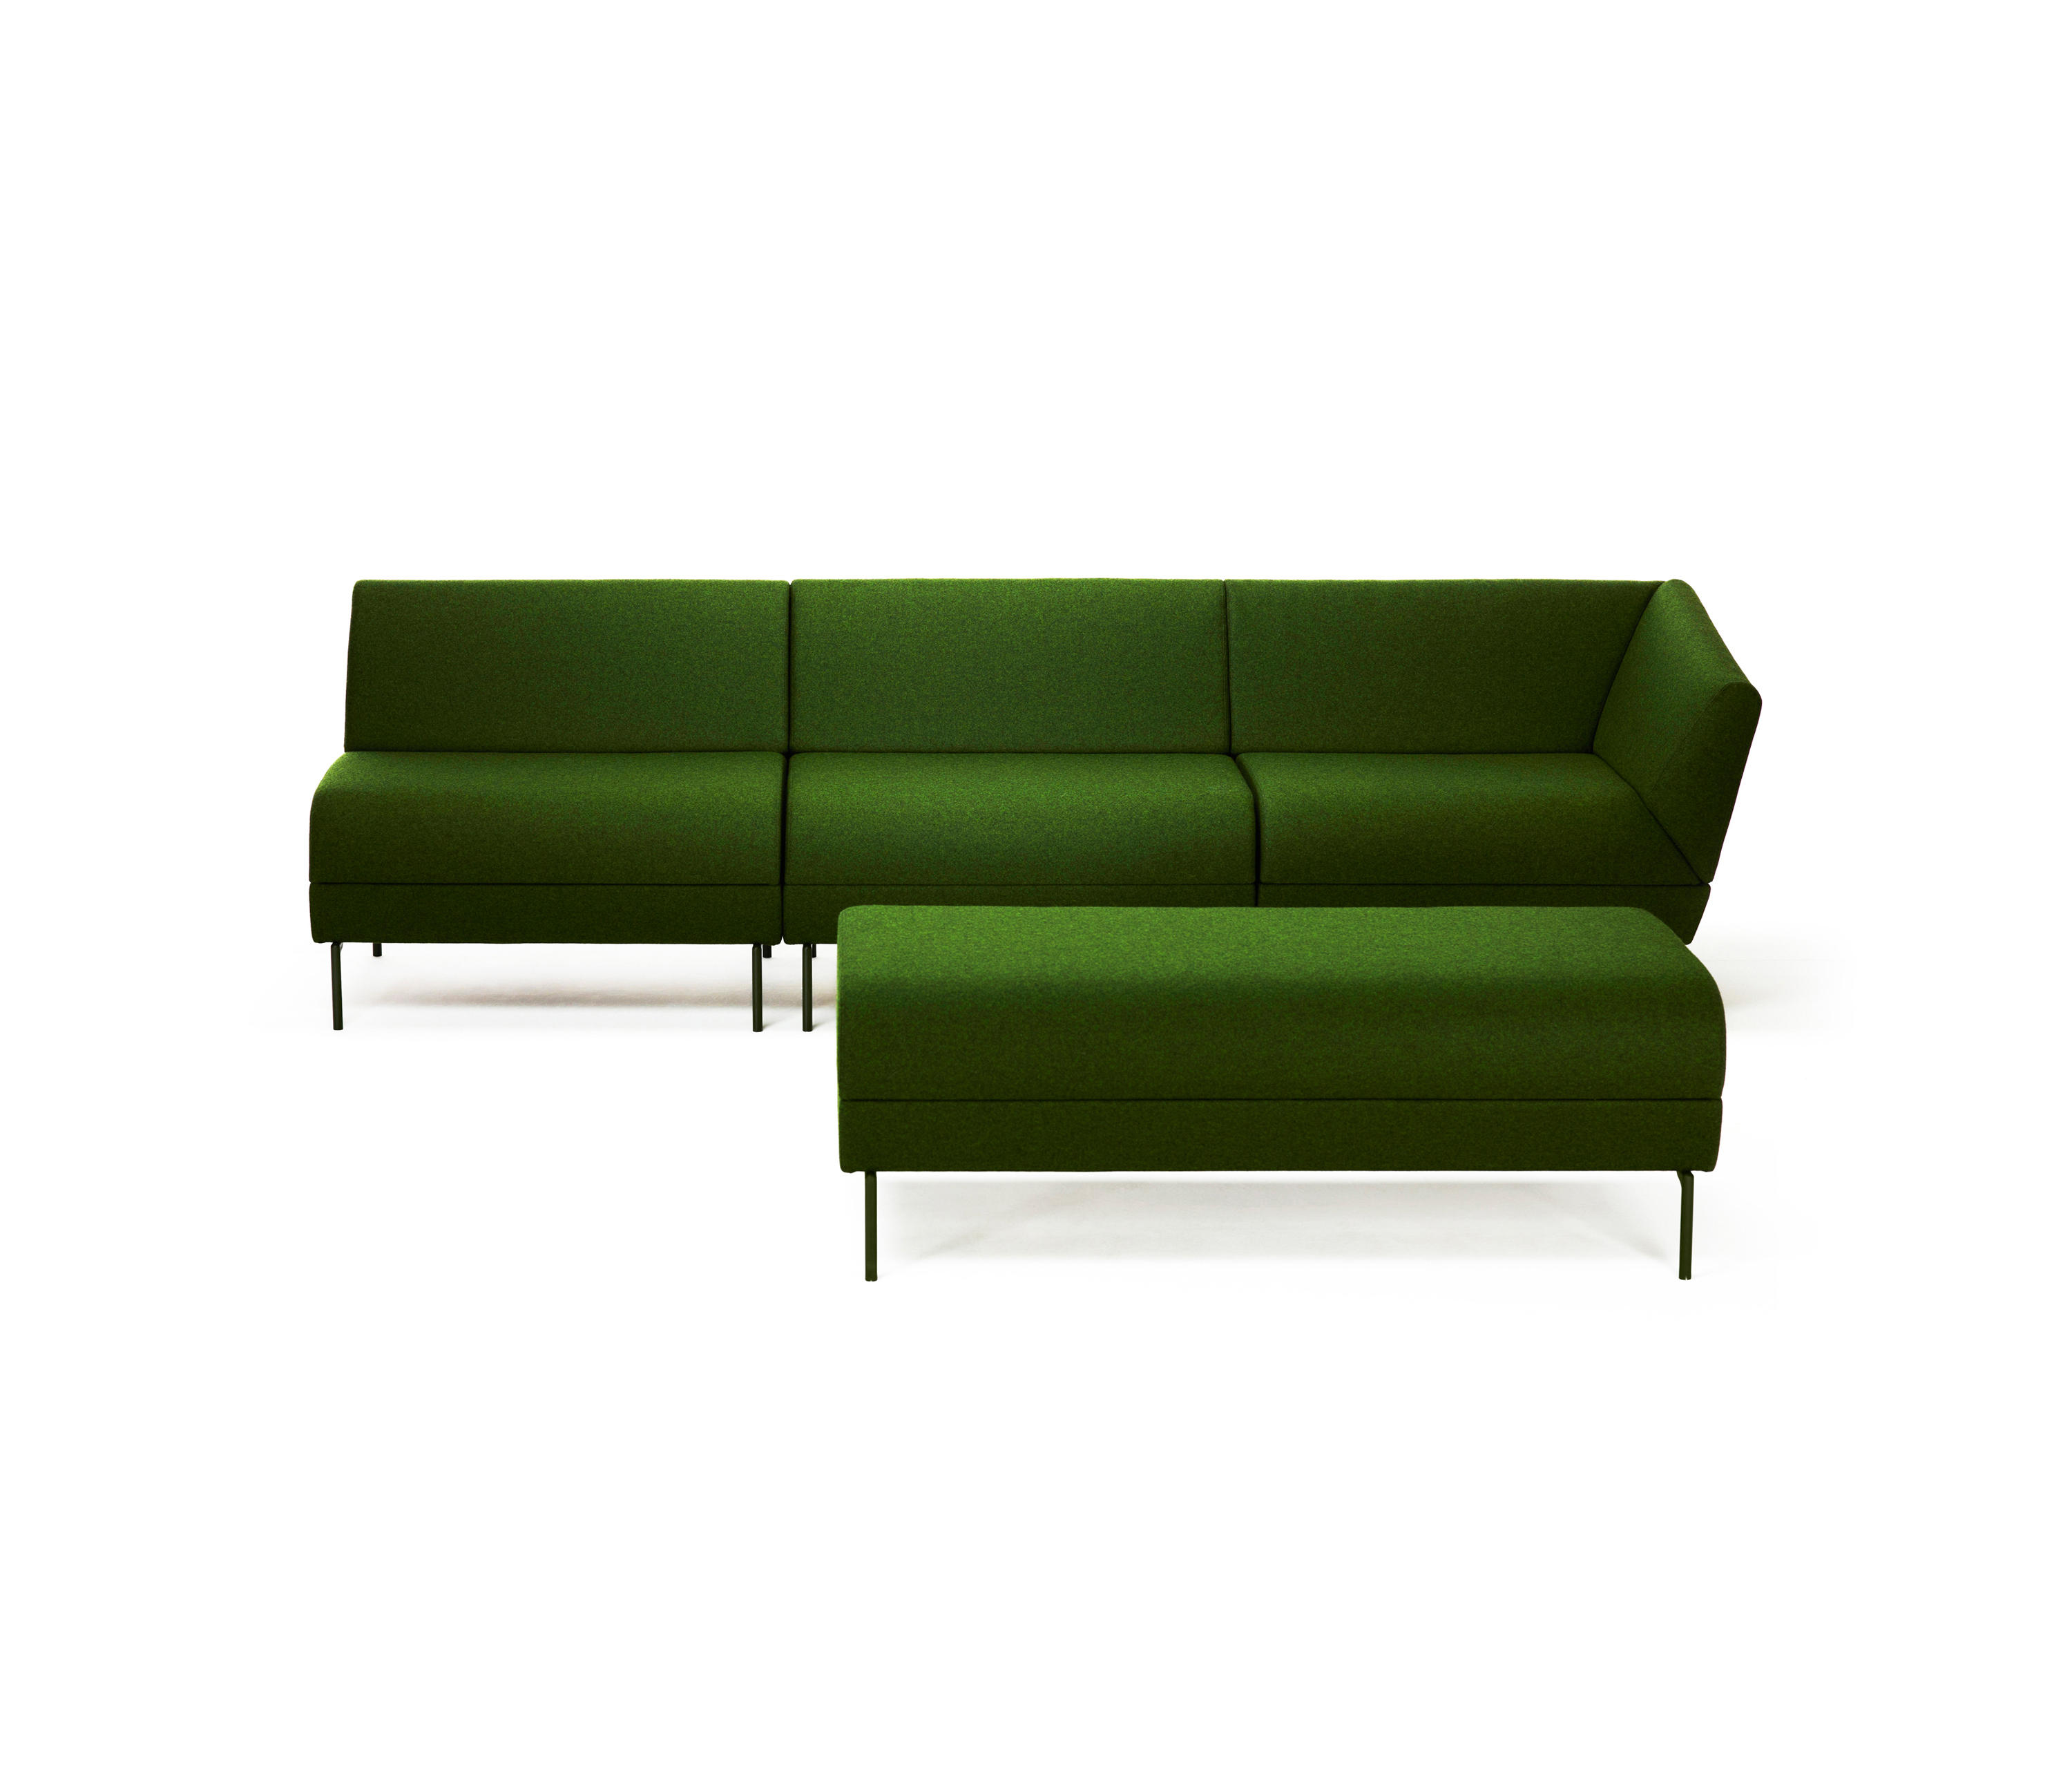 ADDIT Lounge sofas from Lammhults Archit